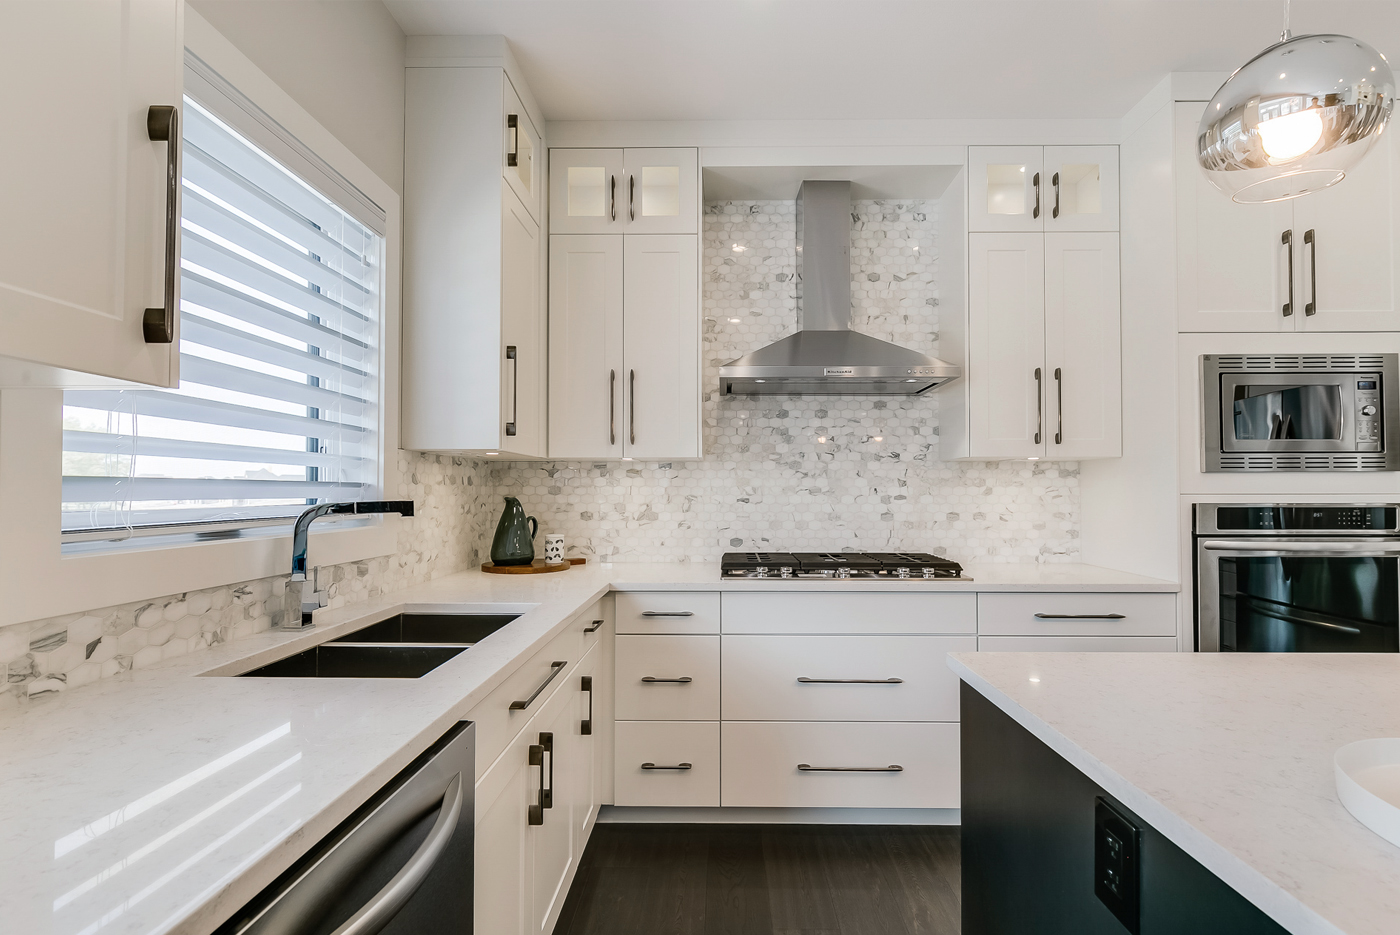 Contemporary Coeval Kitchen cabinets by Superior Cabinets